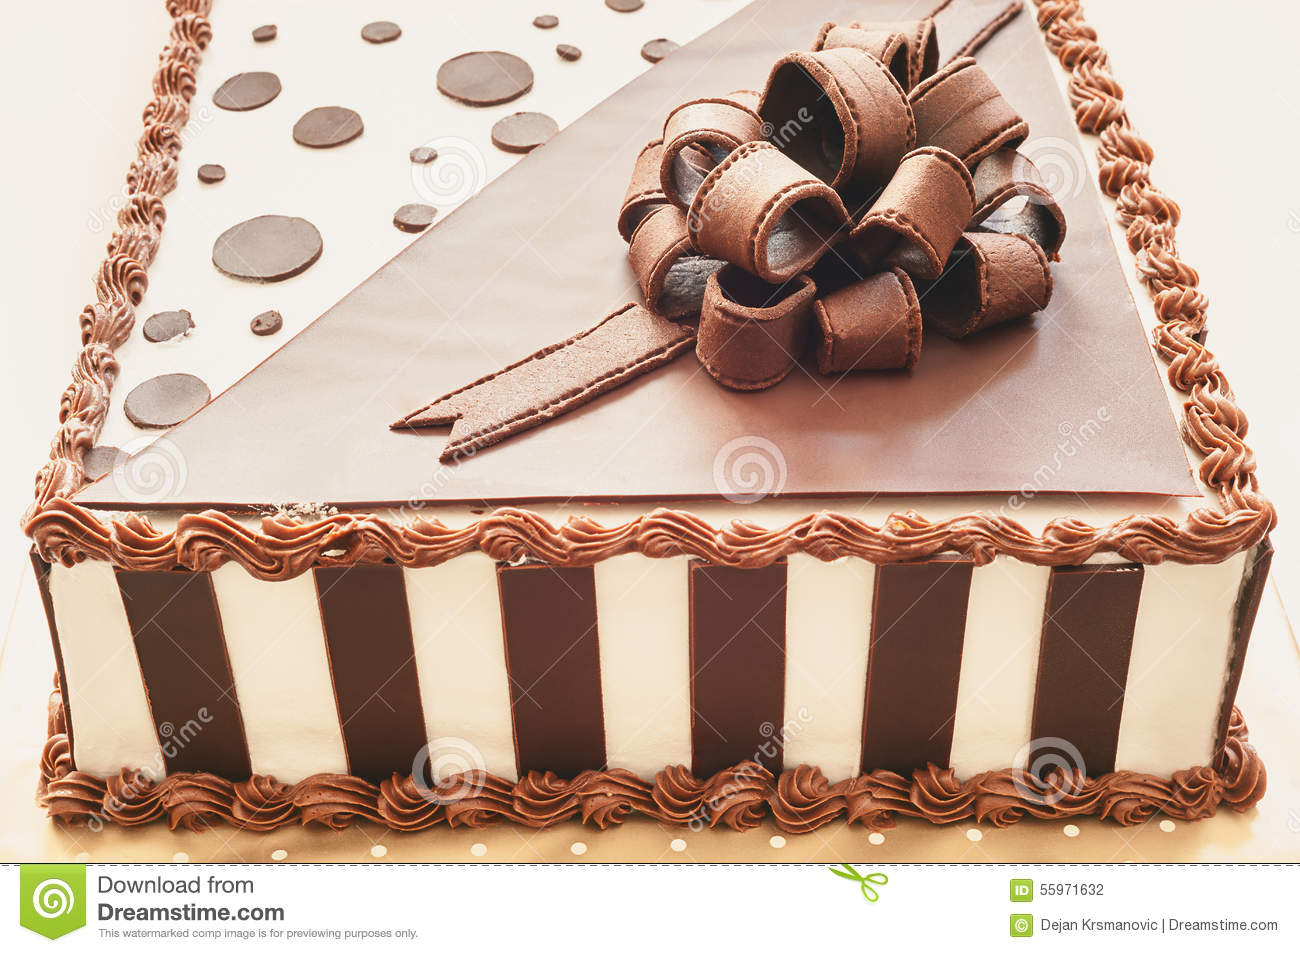 Chocolate Cake Decoration Stock Photo Image Of Homemade 55971632